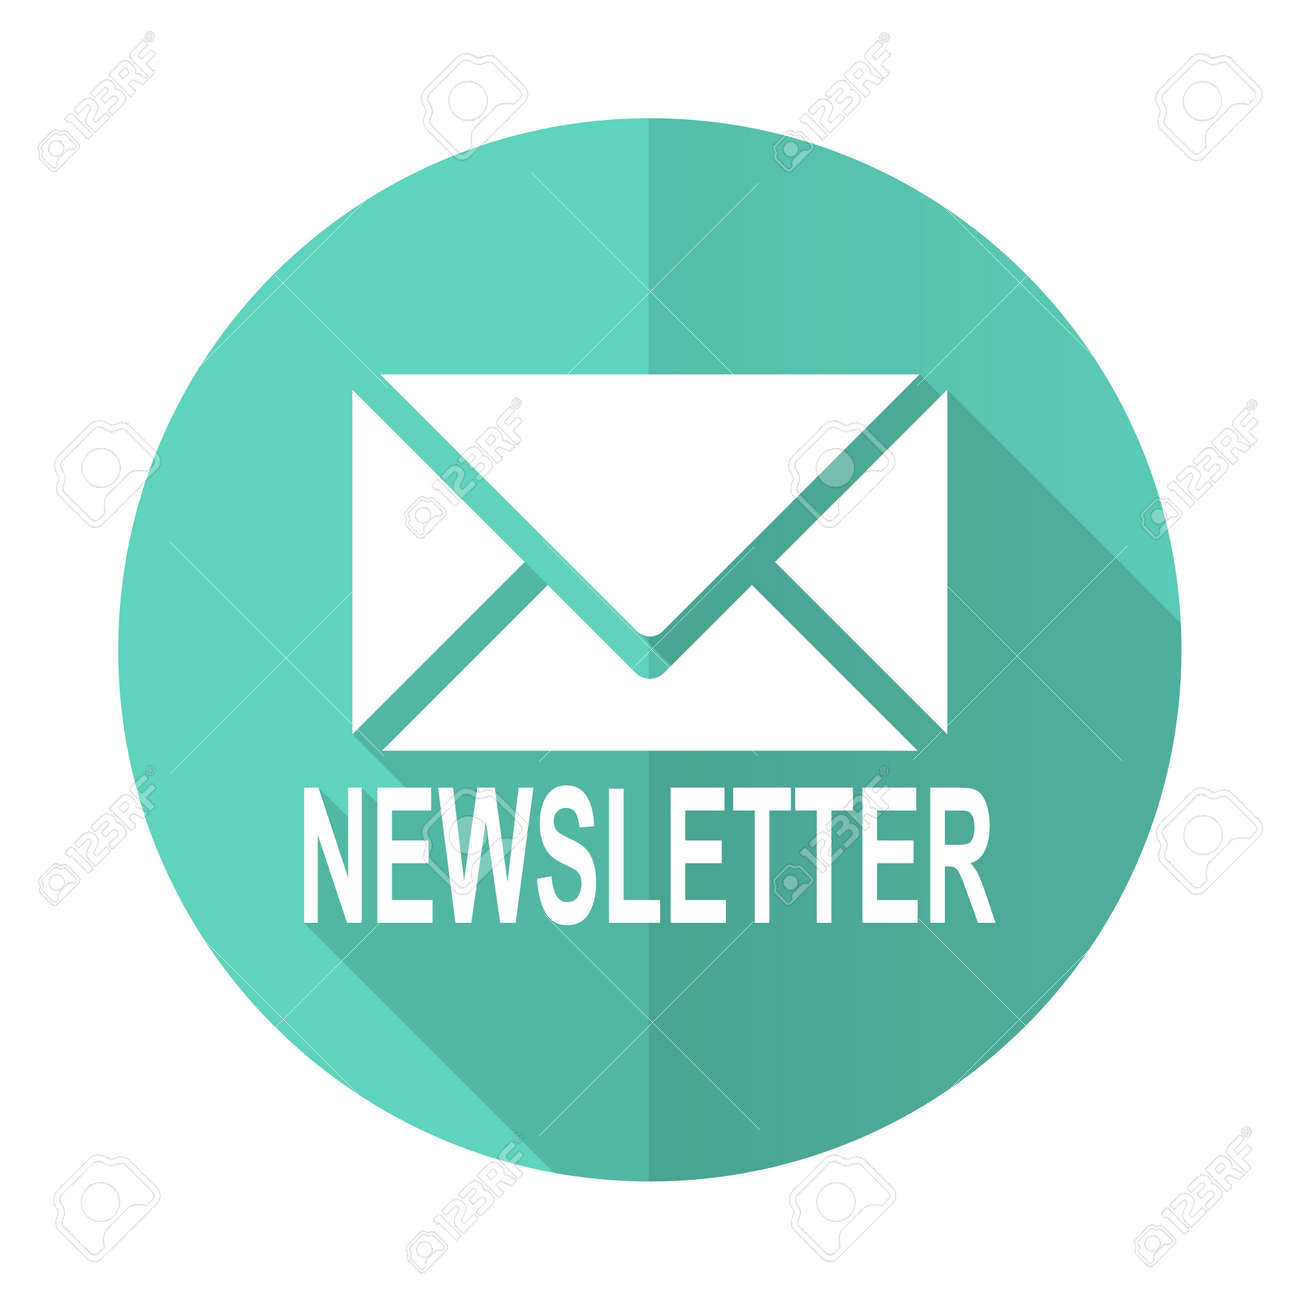 Newsletter Blue Web Flat Design Circle Icon On White Background Stock  Photo, Picture And Royalty Free Image. Image 48429564.